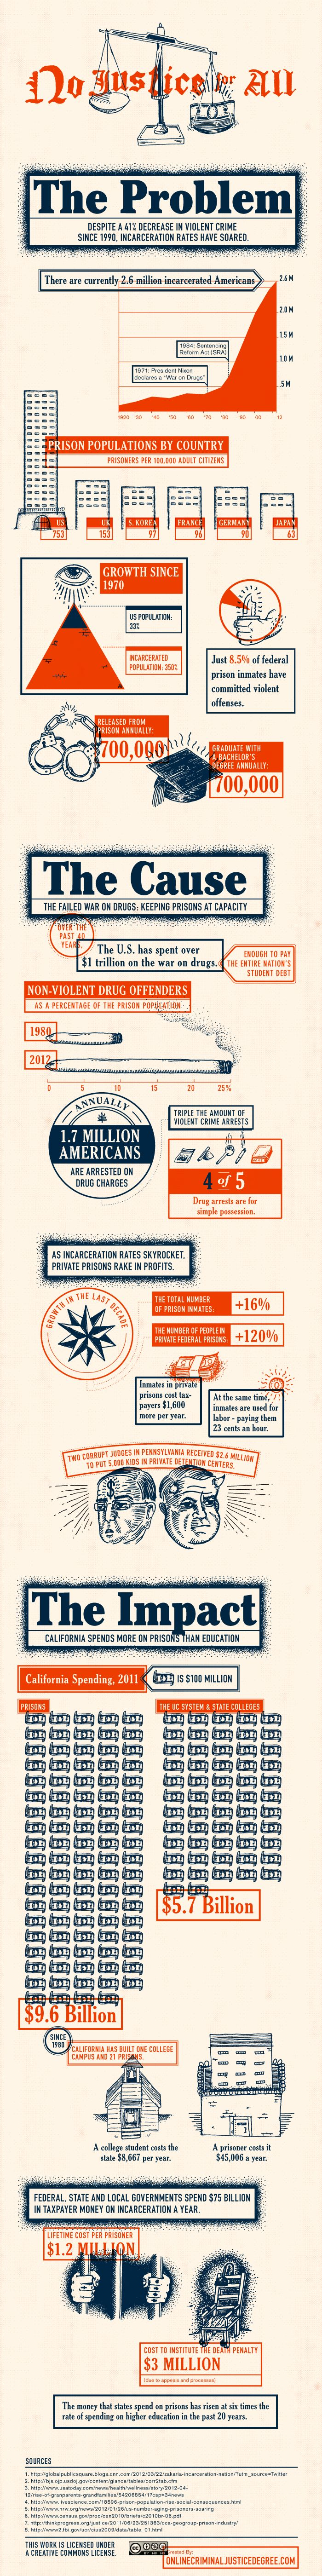 The war on drugs has become a war on America. What is the Problem? #Warondrugs #Infographic #Marijuana